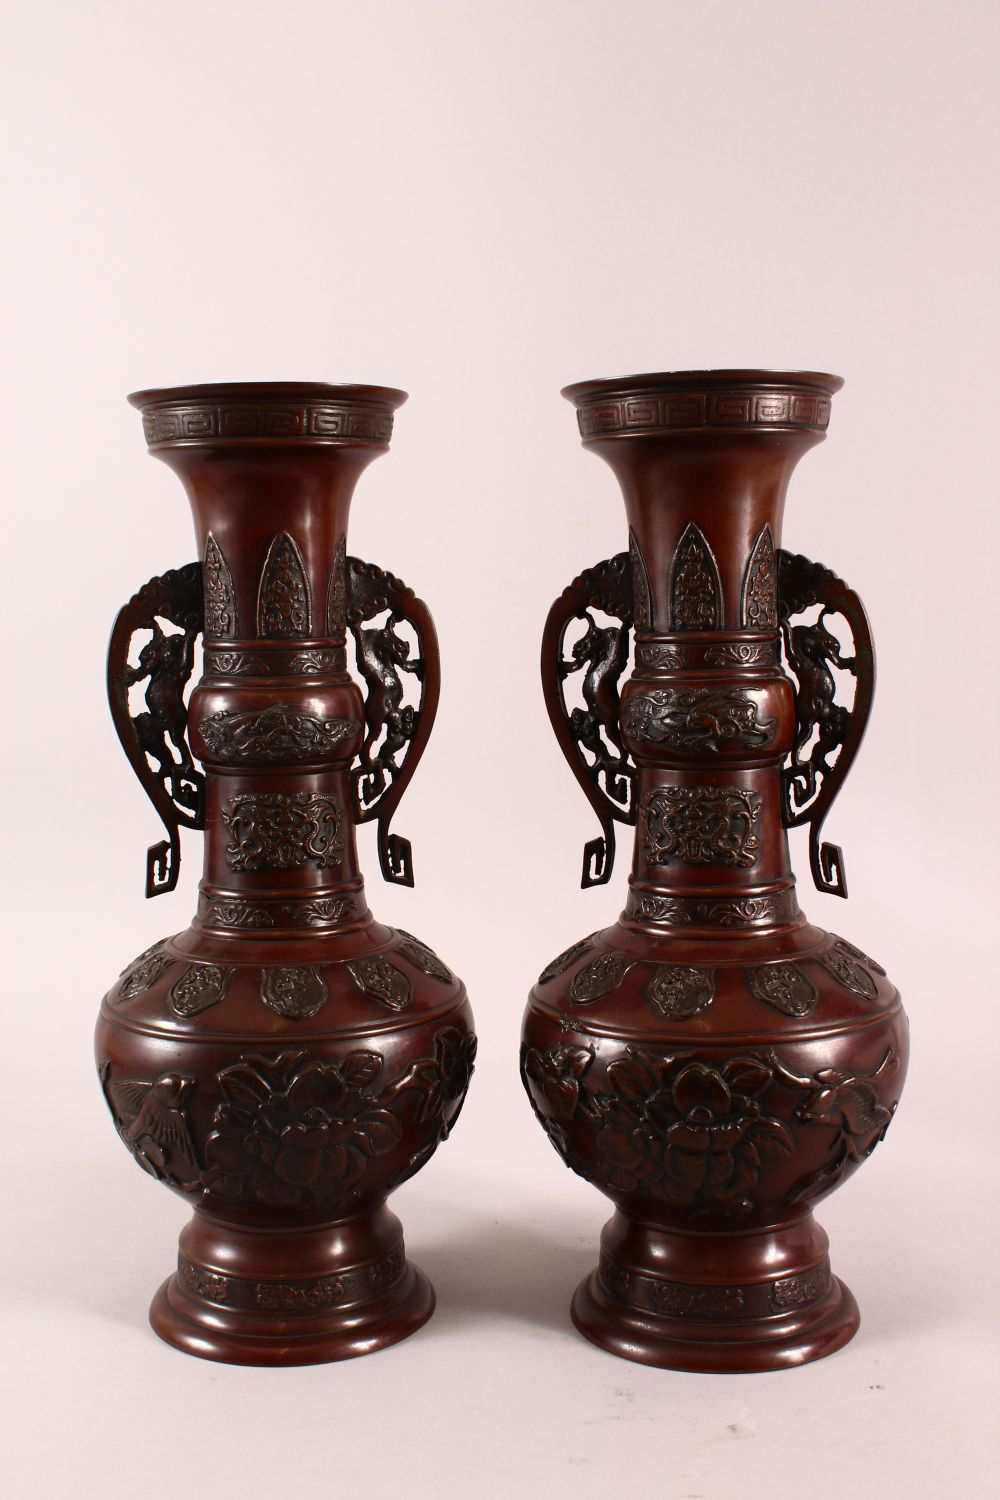 A PAIR OF JAPANESE RELIEF BRONZE VASES, with twin handles, relief birds and flora decoration, 40cm - Image 5 of 7